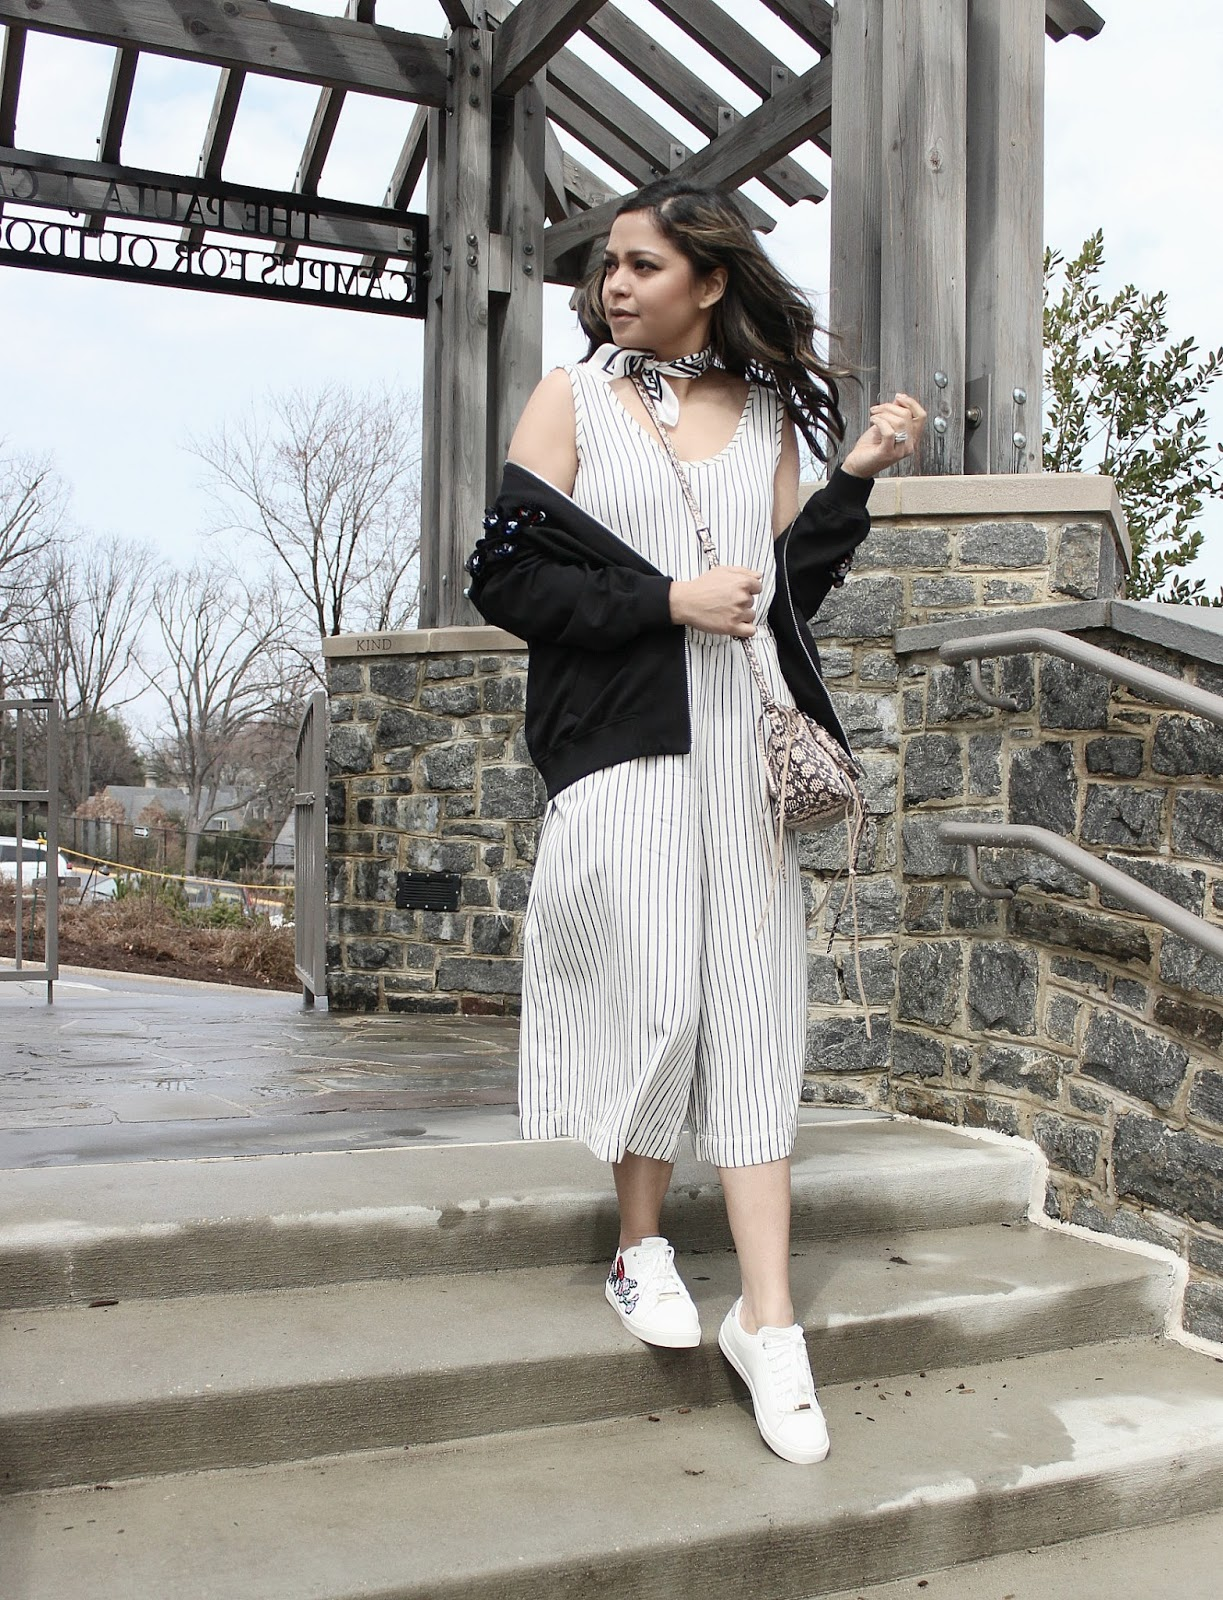 how to wear stripe romper, gap romper, black and white romper, casual, street style, bomber jacket outfit, aldo embroidered sneakers, spring fashion, ootd, saumya shiohare, myriad musings